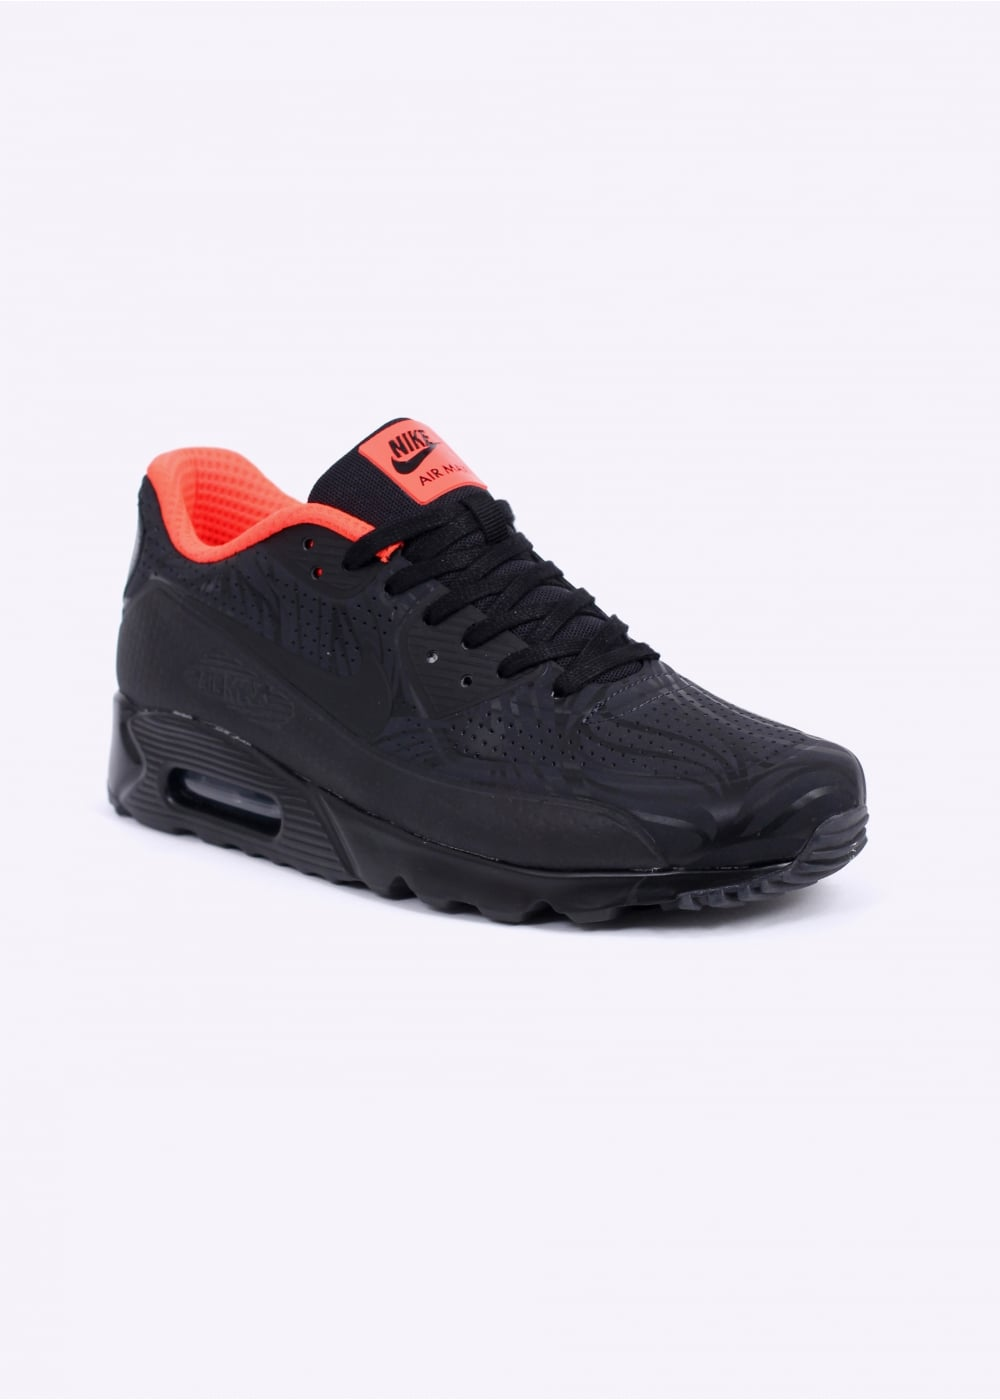 ... new zealand x neymar air max 90 ultra trainers black fd2ad 82984 eaa8c141ea